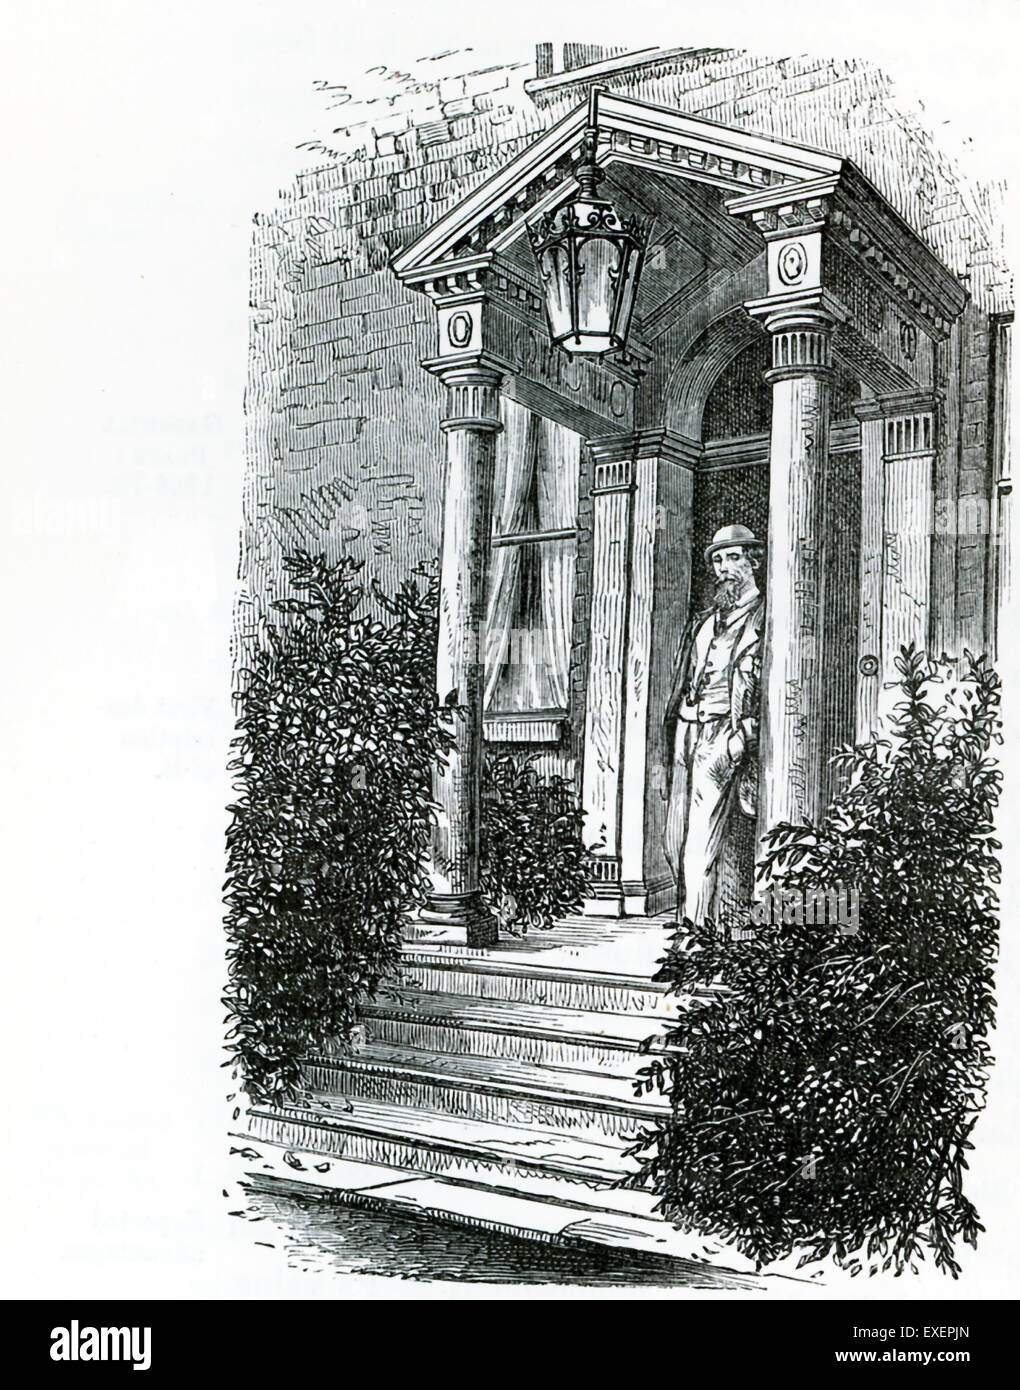 This illustration from John Forster's The Life of Charles dickens shows the porch at Gadshill, the mansion in the Stock Photo